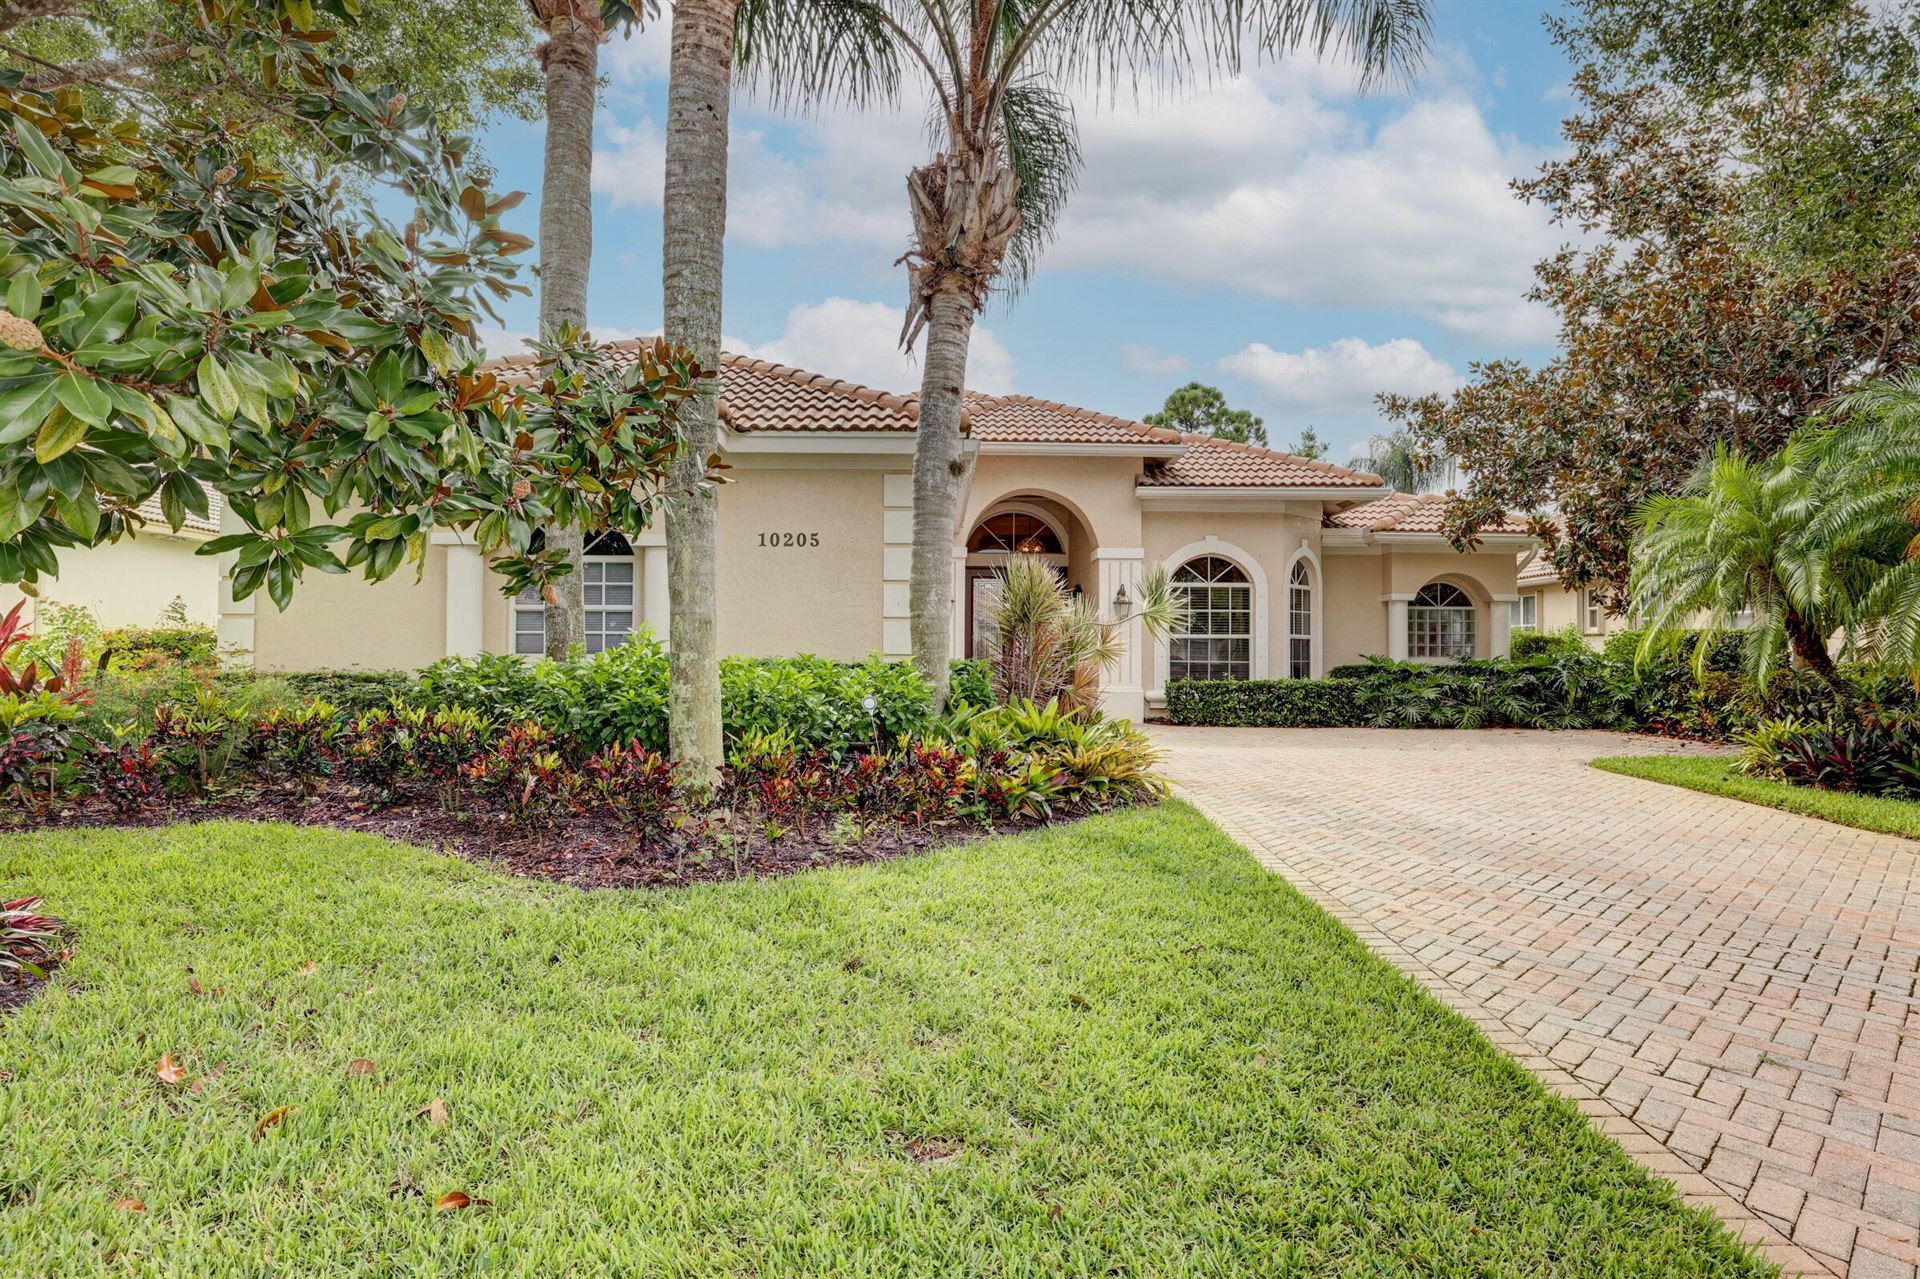 Photo of 10205 Crosby Place, Saint Lucie West, FL 34986 (MLS # RX-10743331)